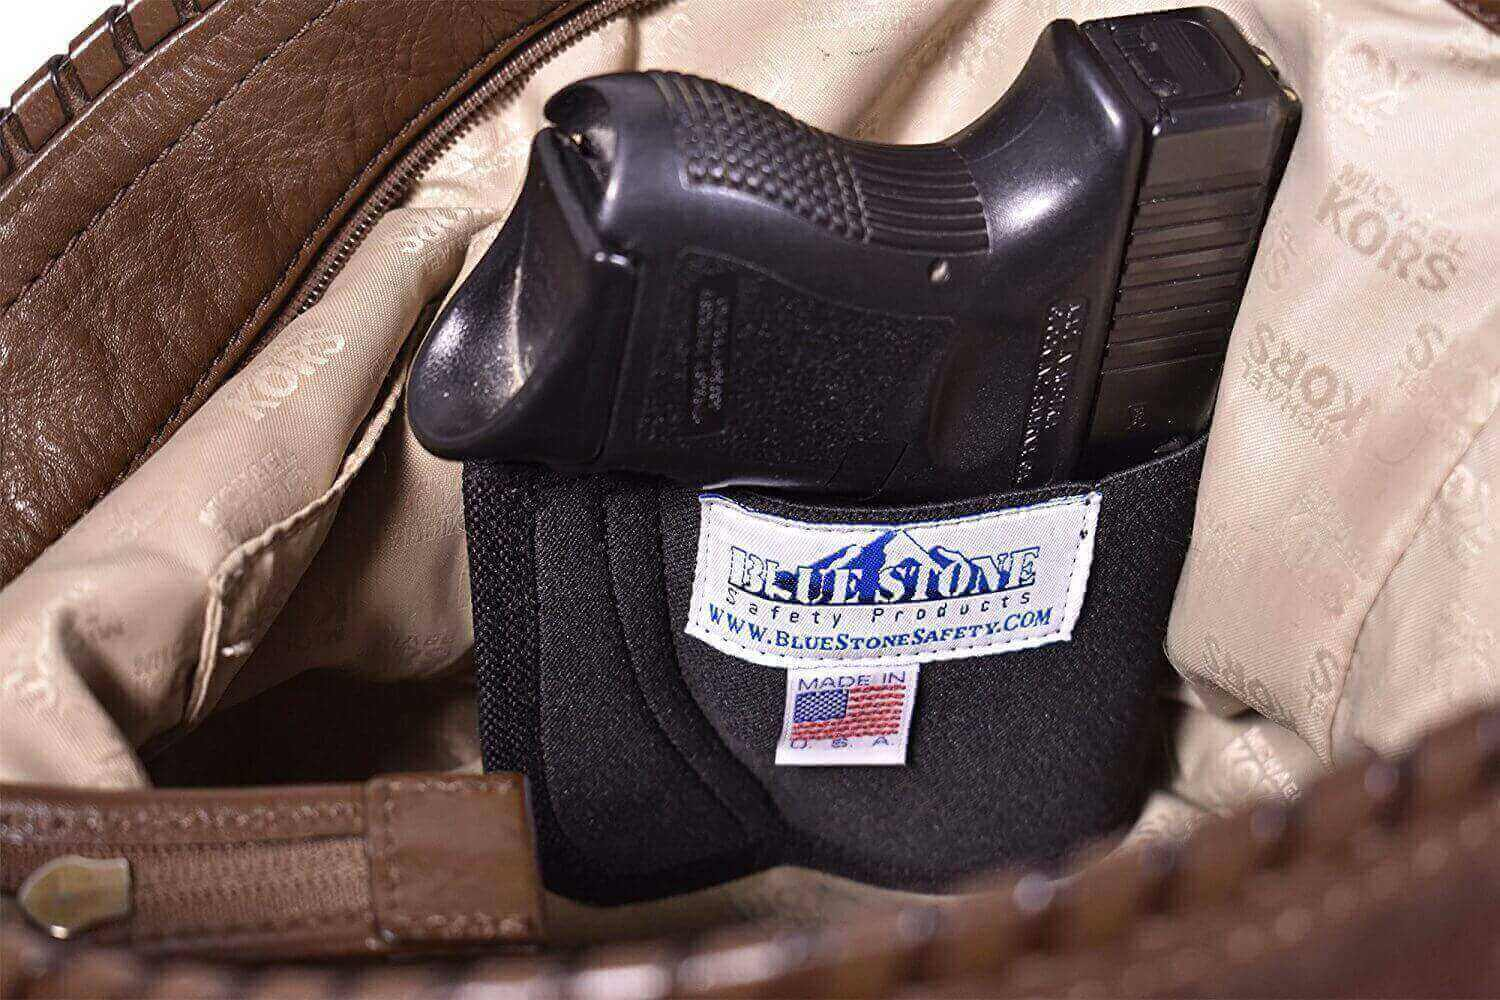 Top 6 Purse Holster Options for Maximum Safety